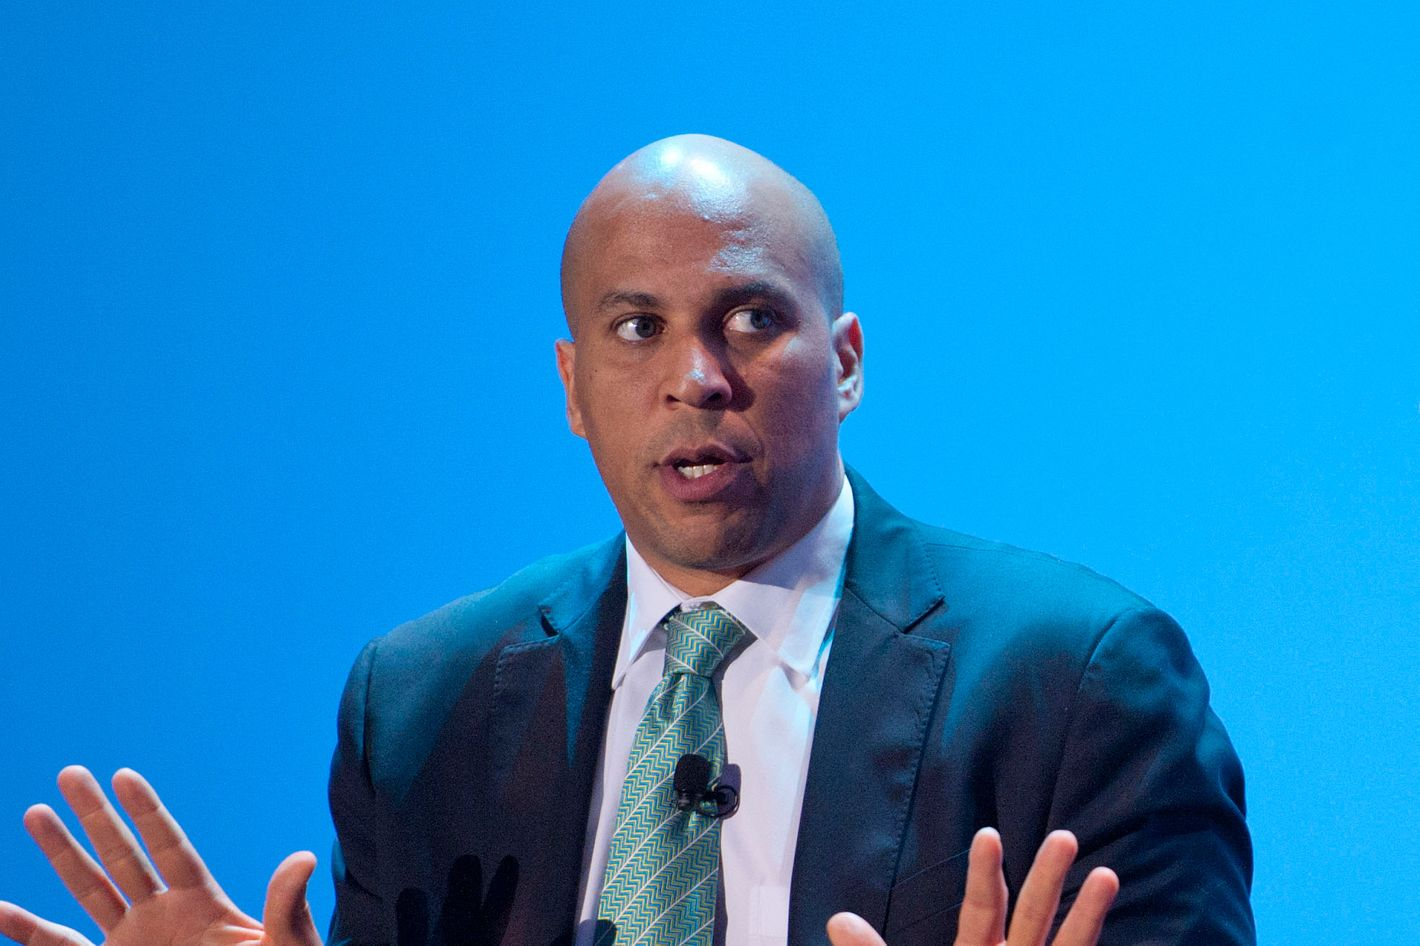 Cory Booker at a USA Today event at the National Portrait Gallery on September 13, 2012 in Washington, DC.